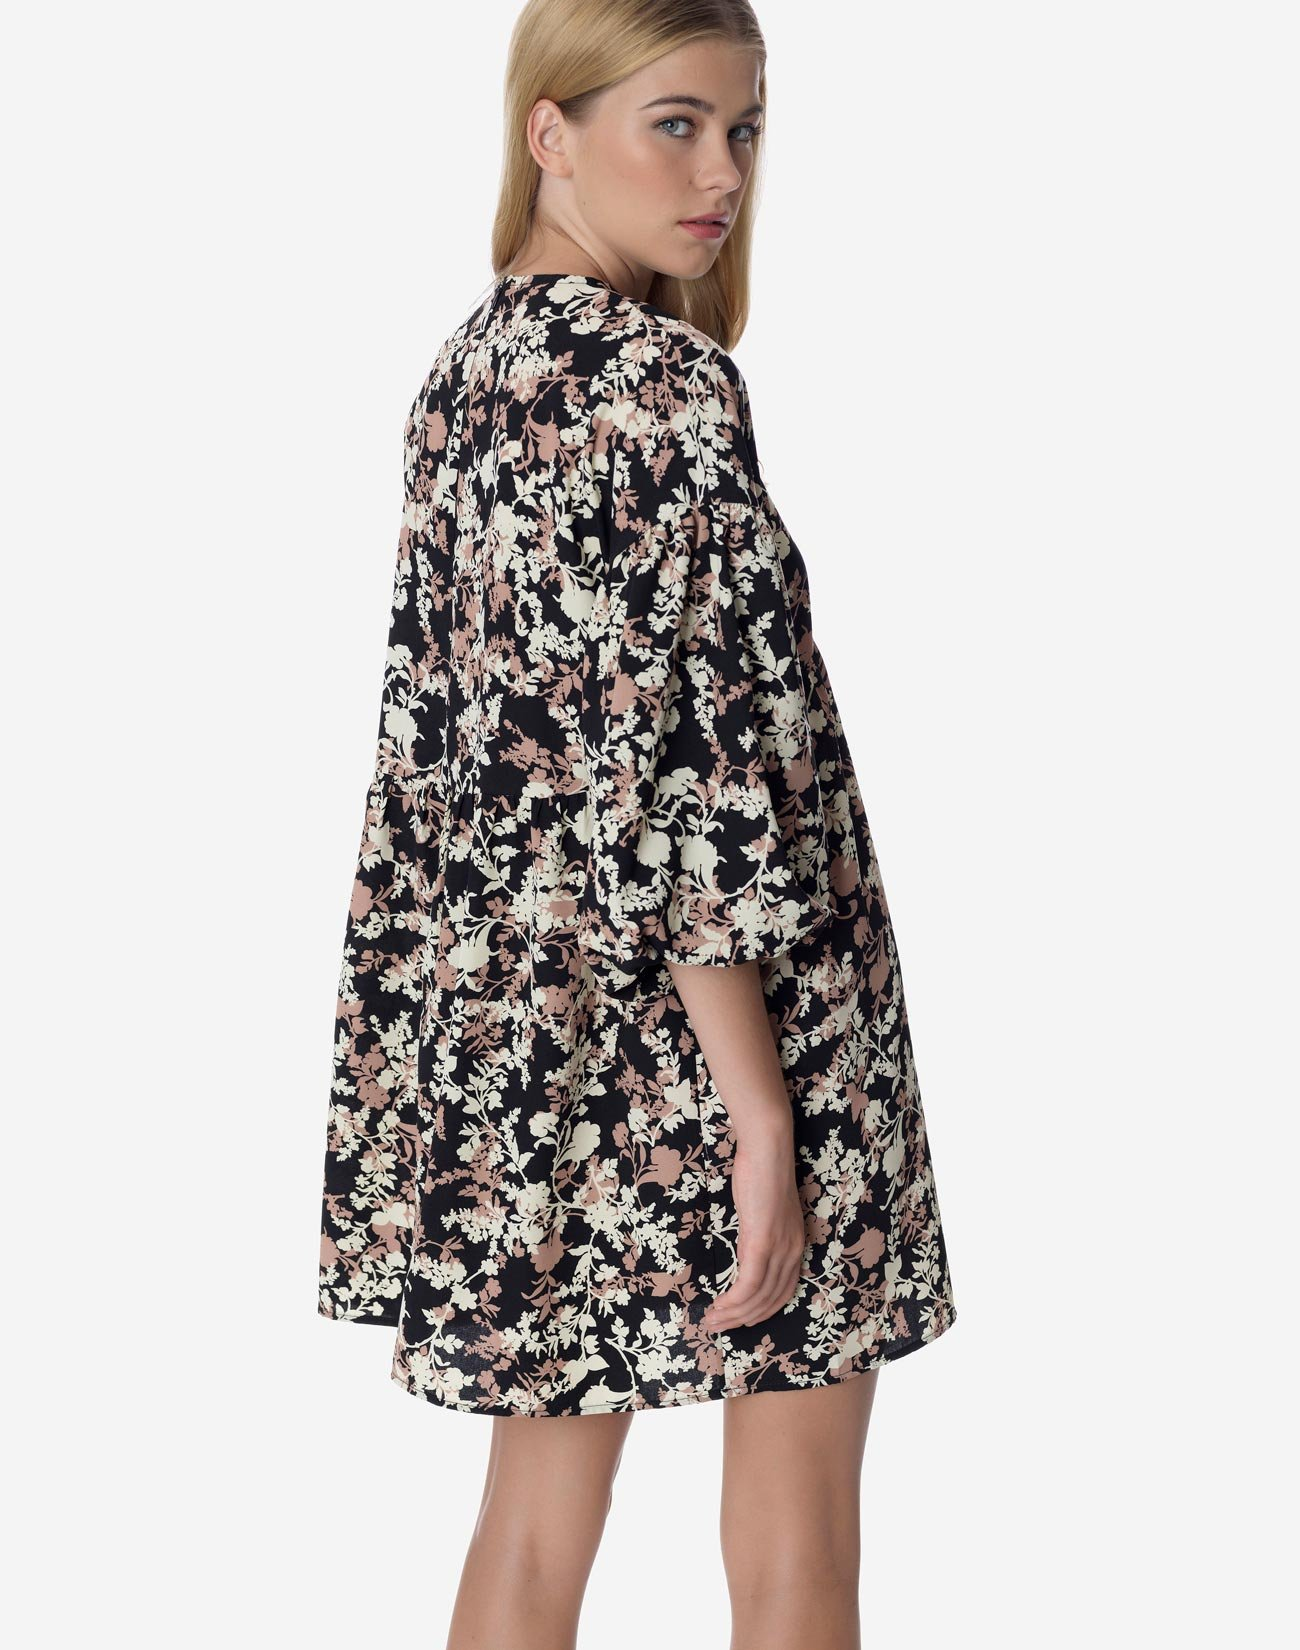 Printed mini dress with puff sleeves